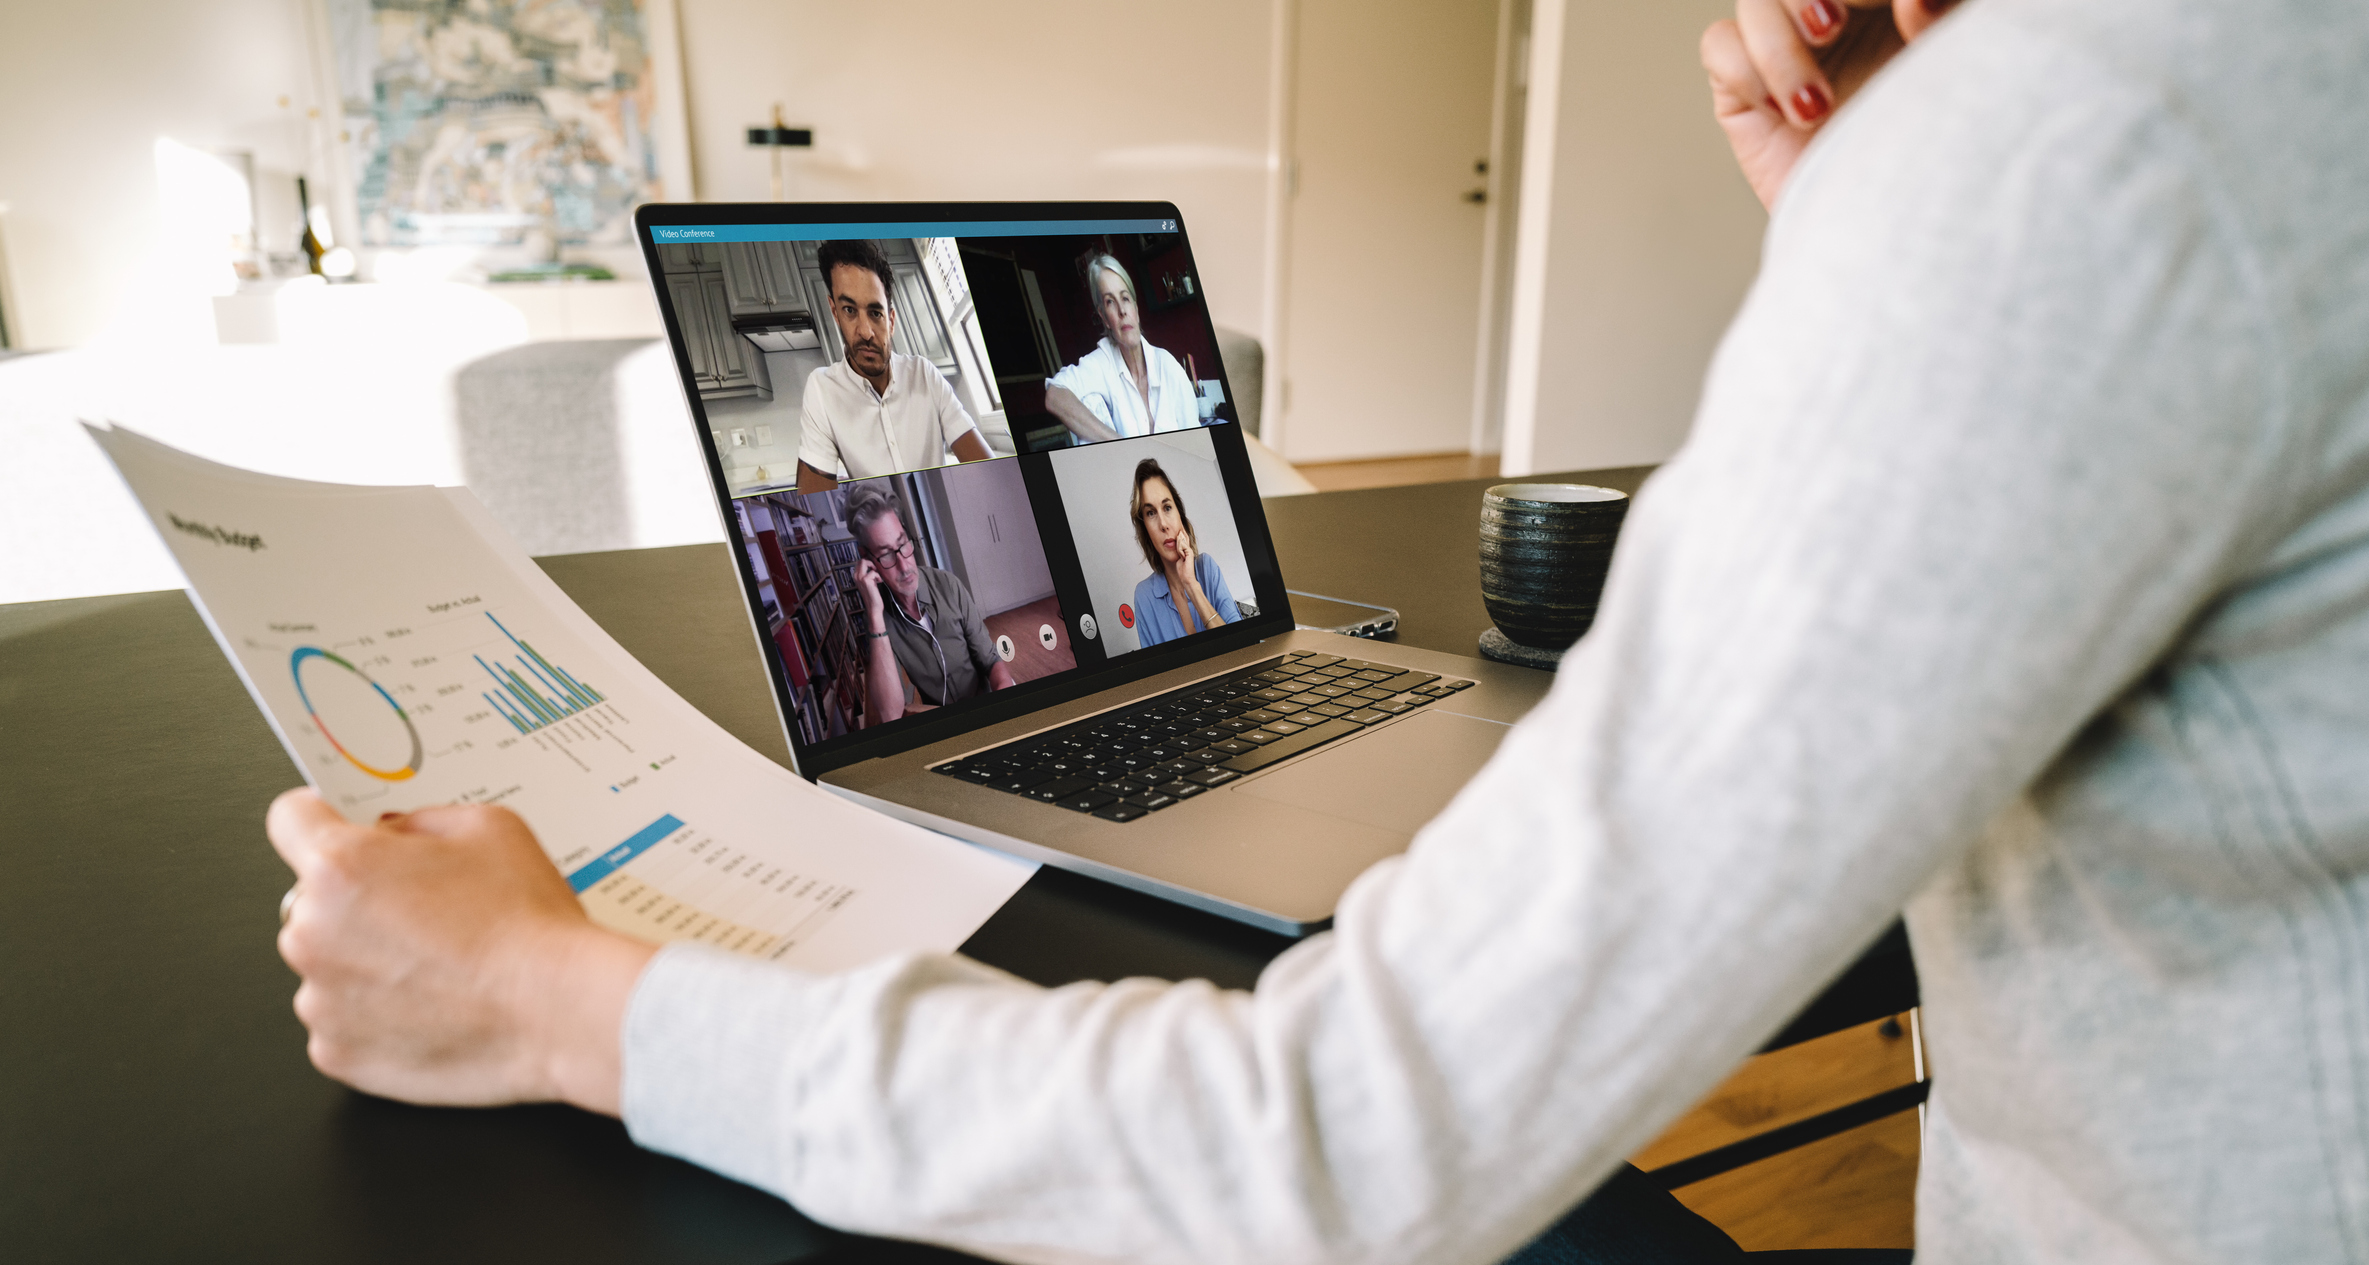 virtual business meeting hosted by video conference